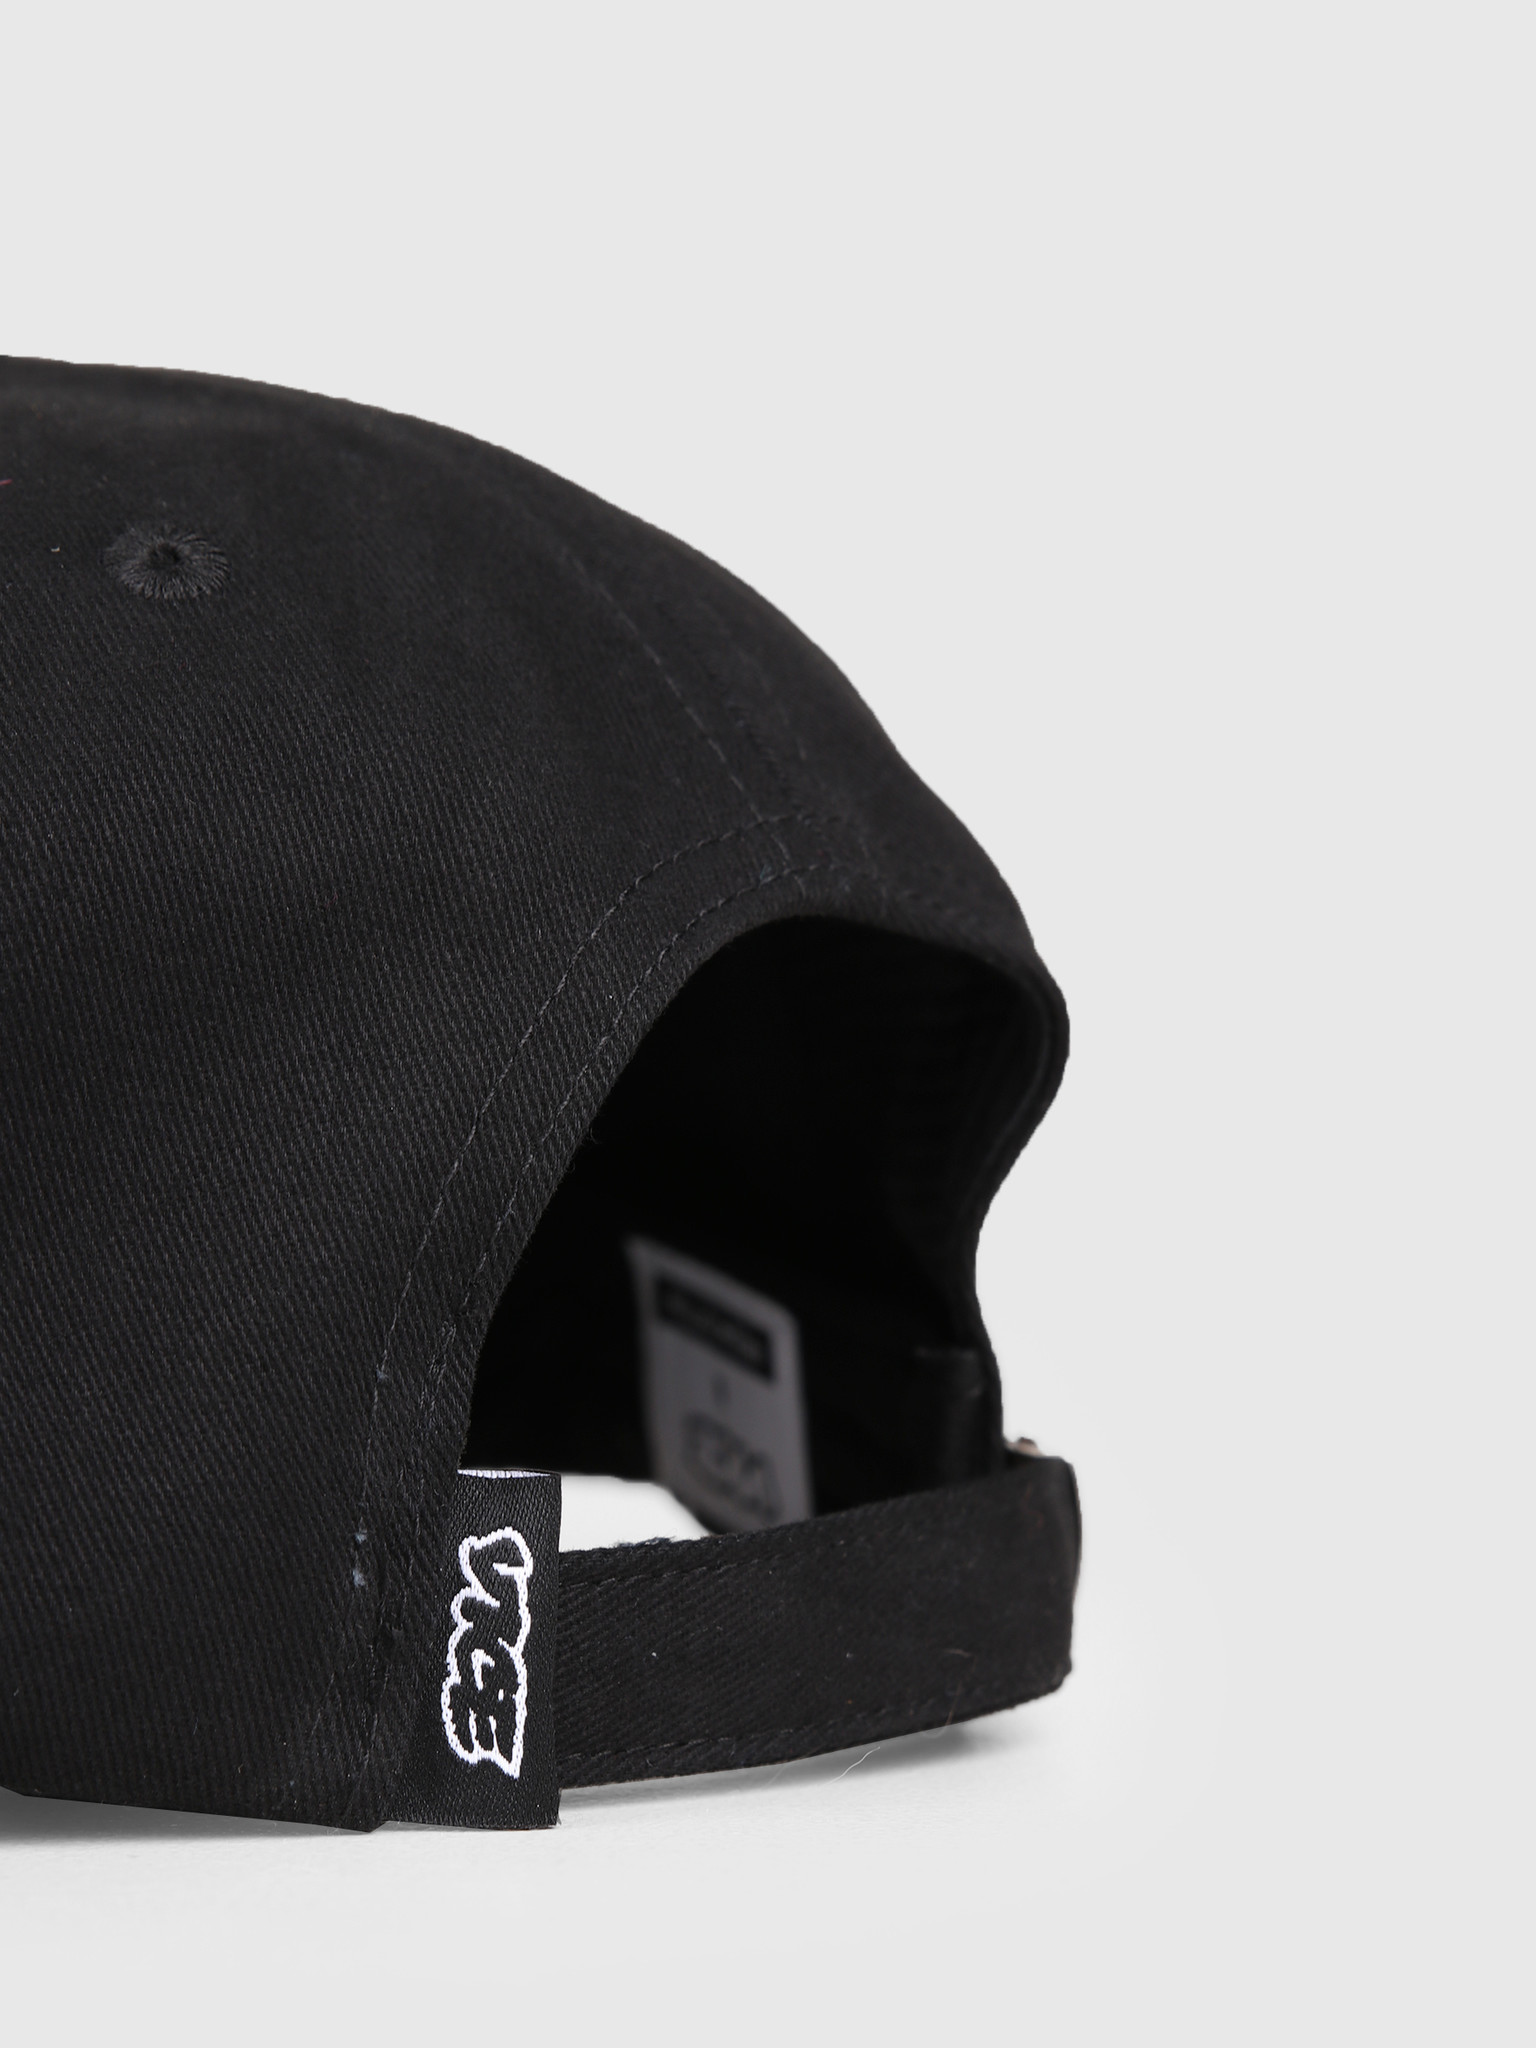 Vice VICE Wave Cap Black White